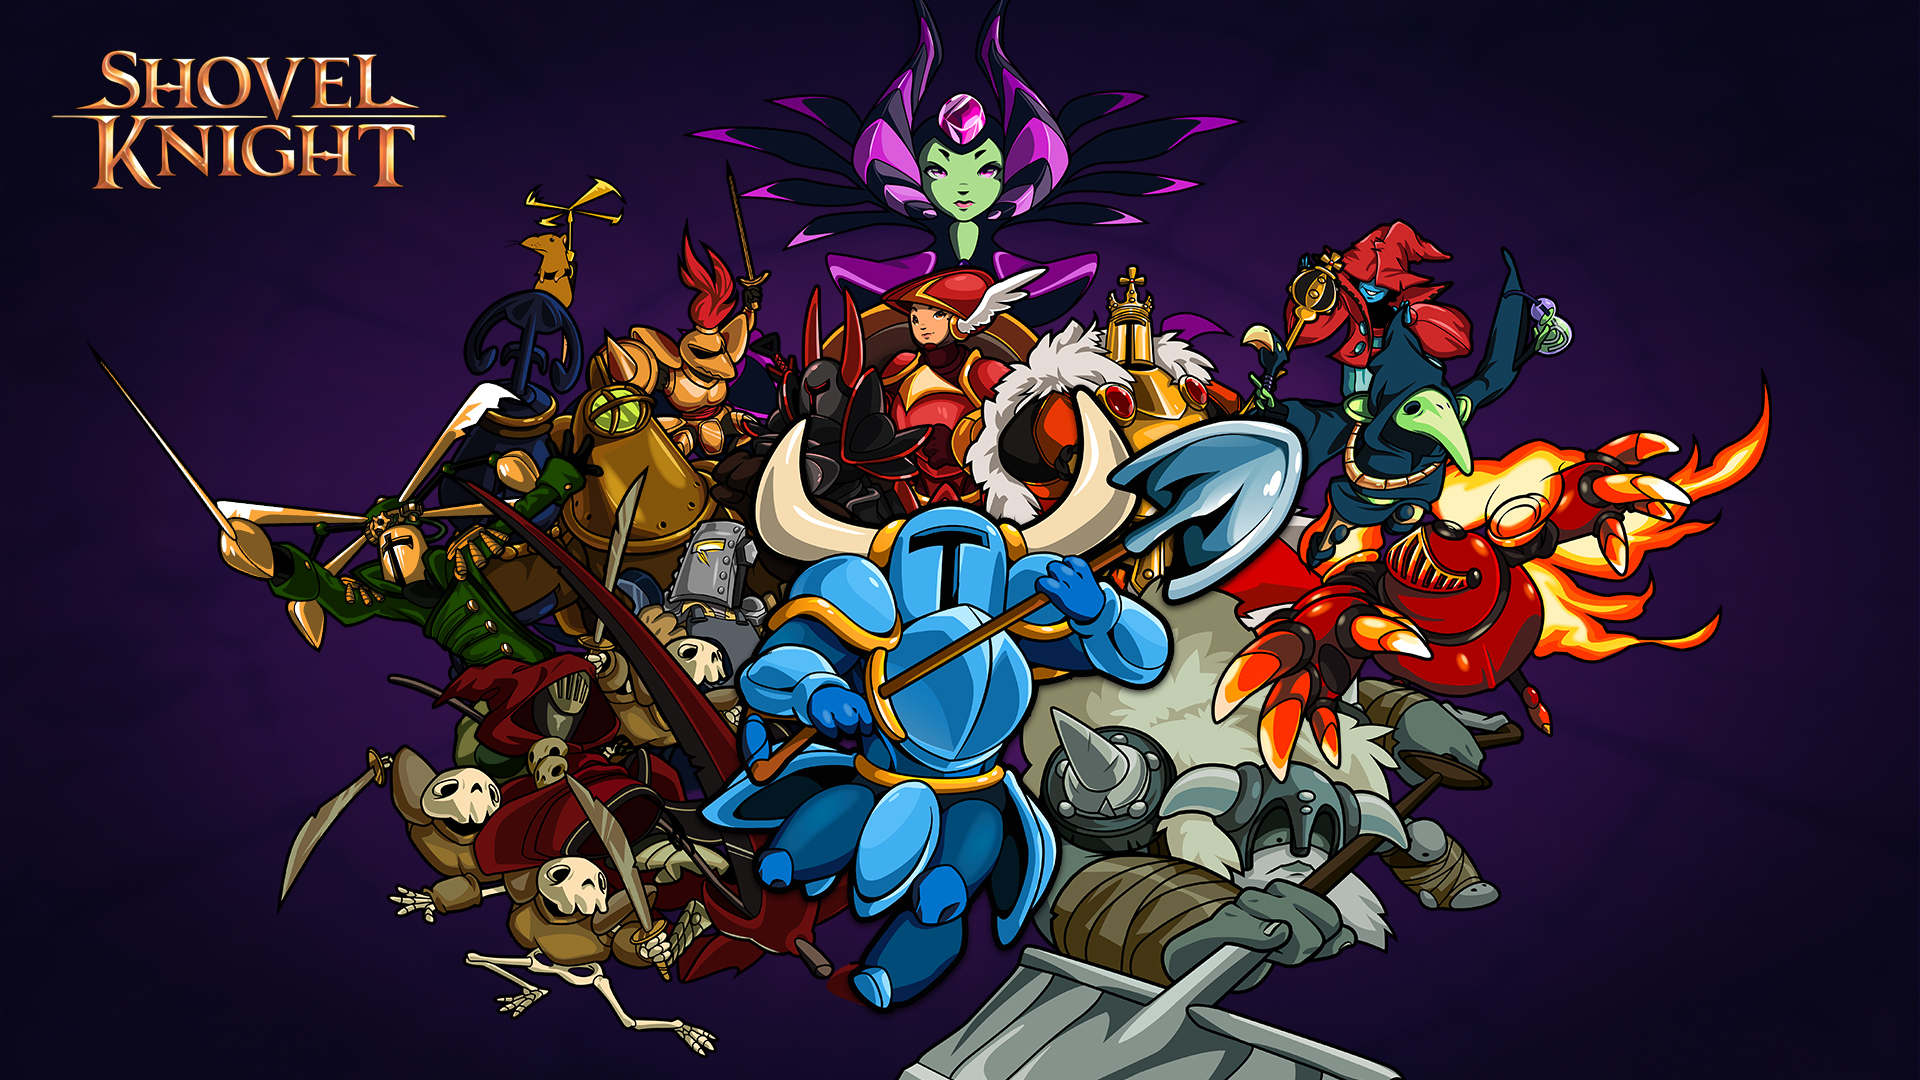 """Shovel Knight"" for PlayStation Coming April 21 - Prepare Your Shovel for a Fight with Kratos"